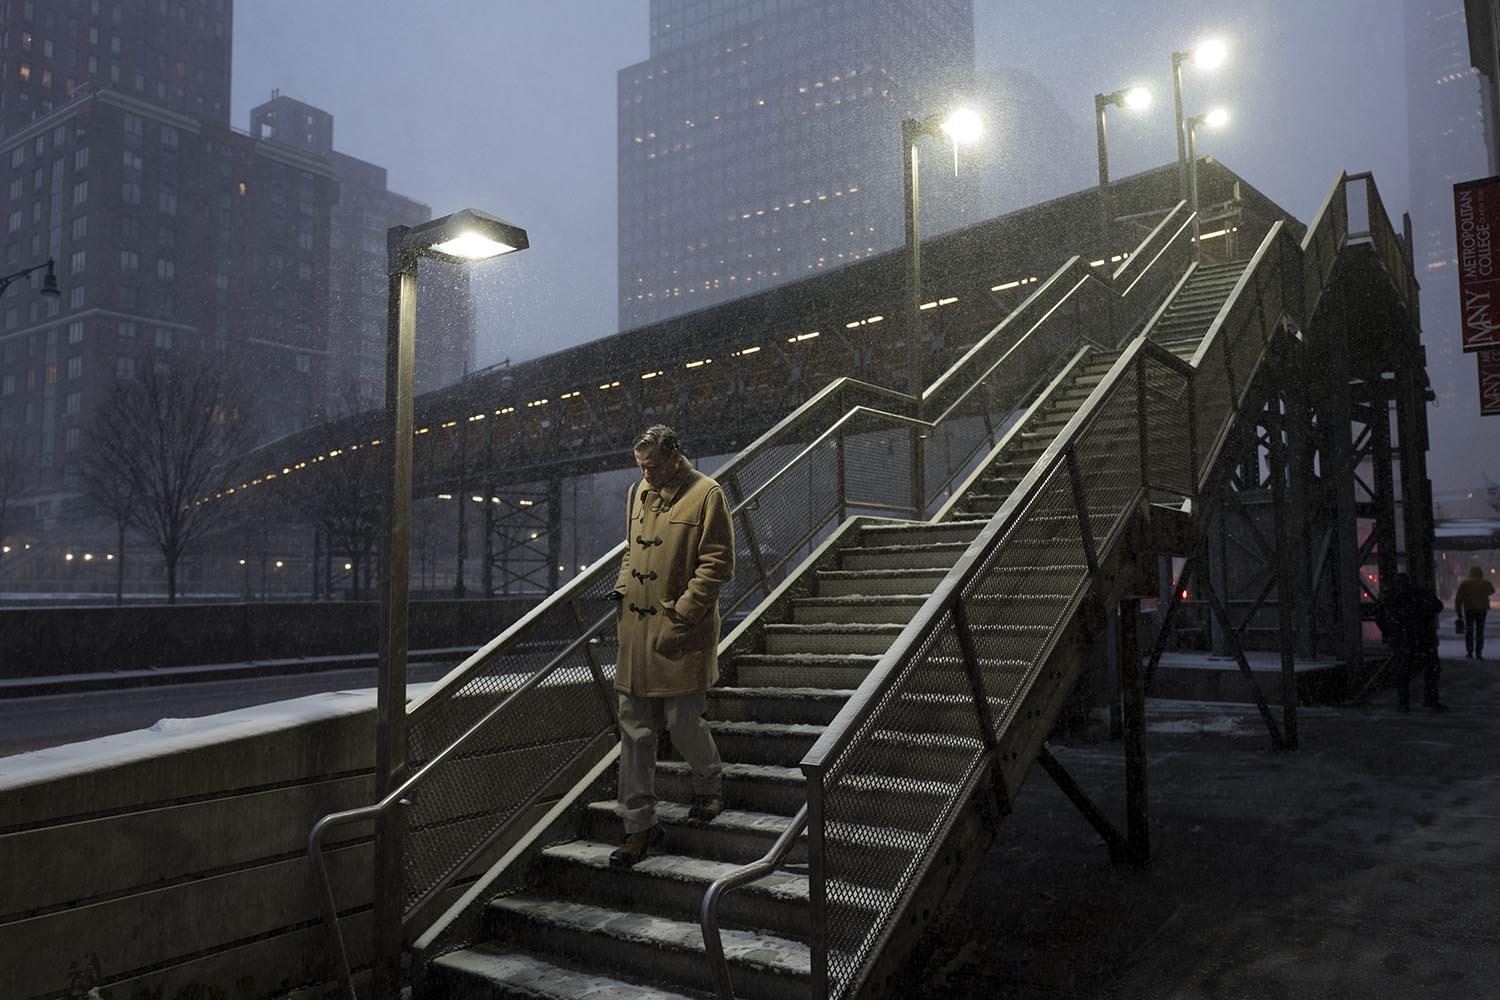 "<div class=""meta image-caption""><div class=""origin-logo origin-image ap""><span>AP</span></div><span class=""caption-text"">A man walks down a staircase through an early morning snowfall, Thursday, Jan. 4, 2018, in New York. (AP Photo/Mark Lennihan)</span></div>"